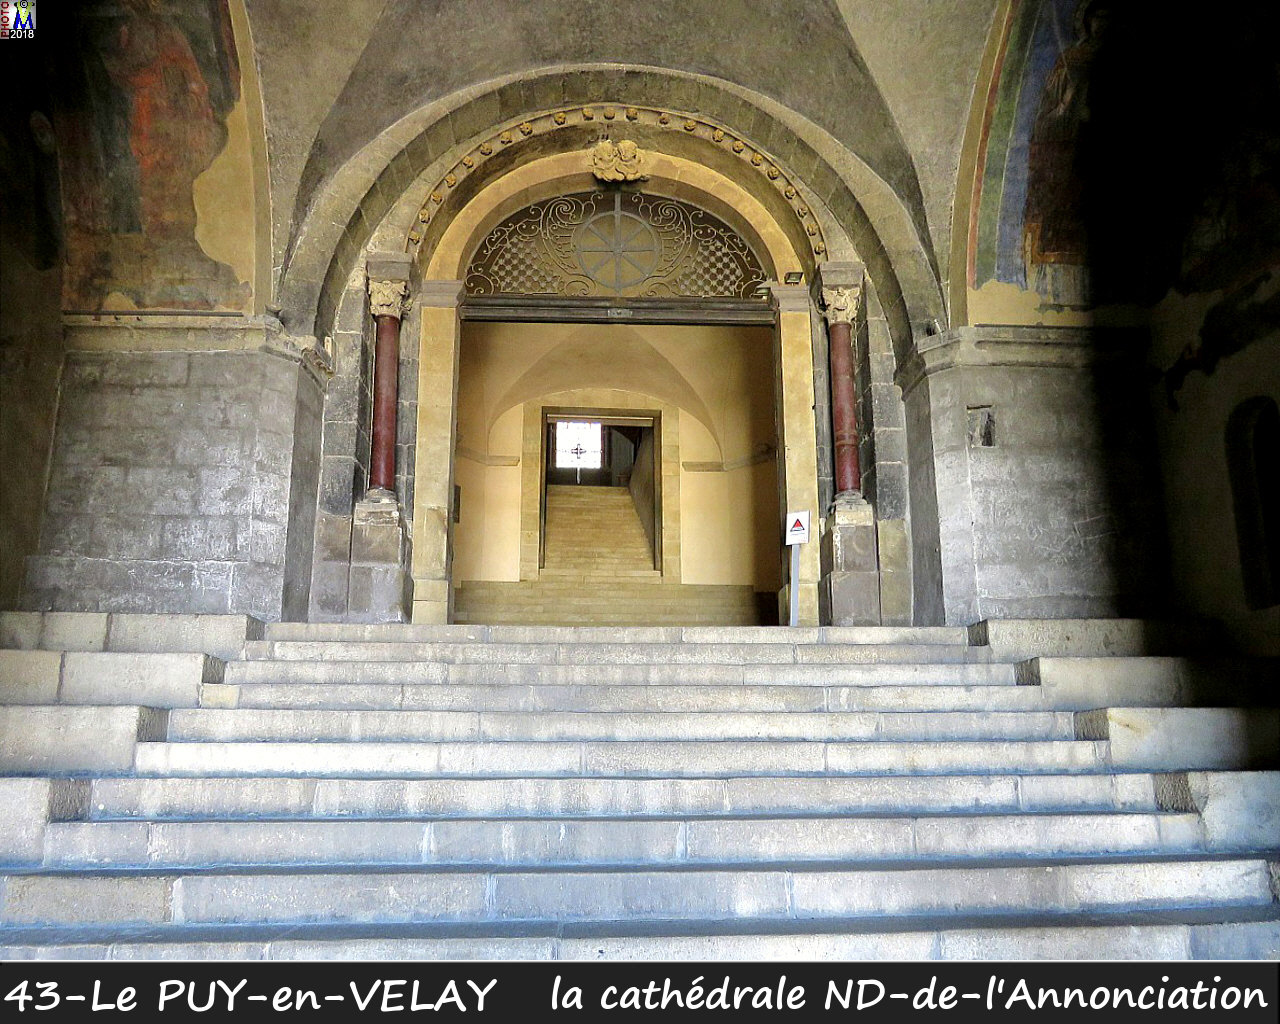 43PUY-EN-VELAY_cathedrale_124.jpg